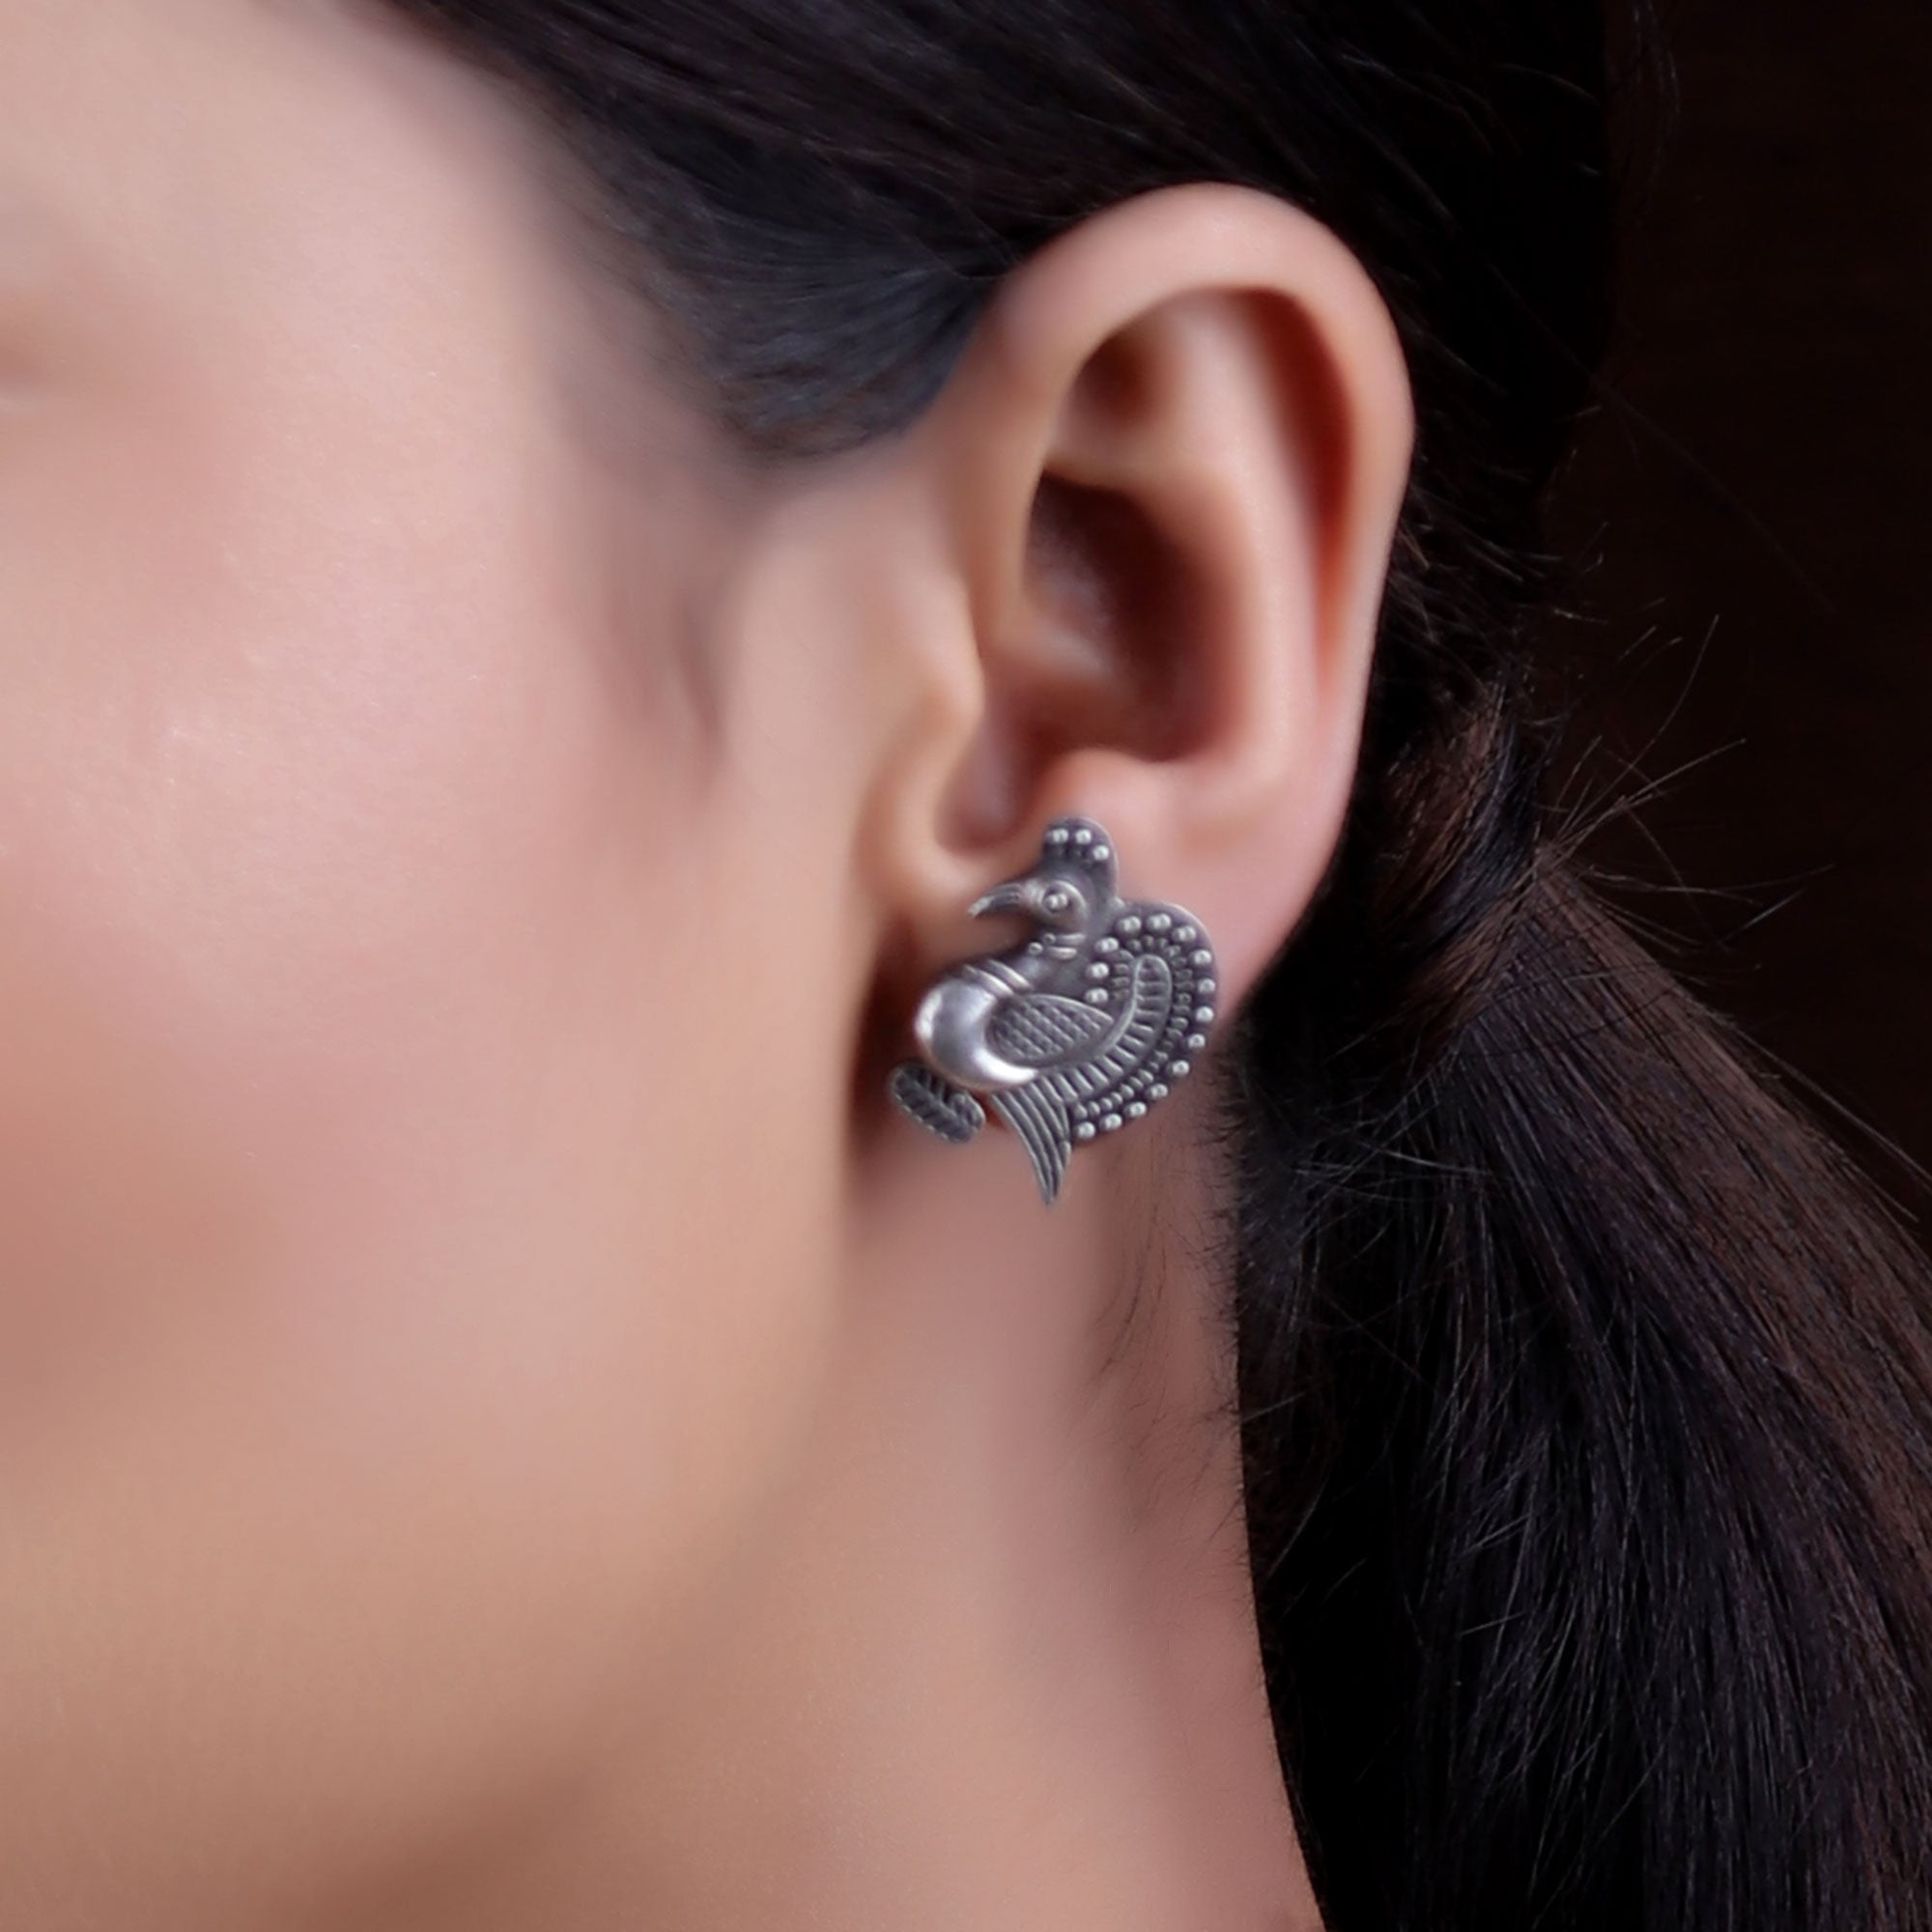 Earrings,The Endearing Crown Peacock Silver Look Alike Stud - Cippele Multi Store